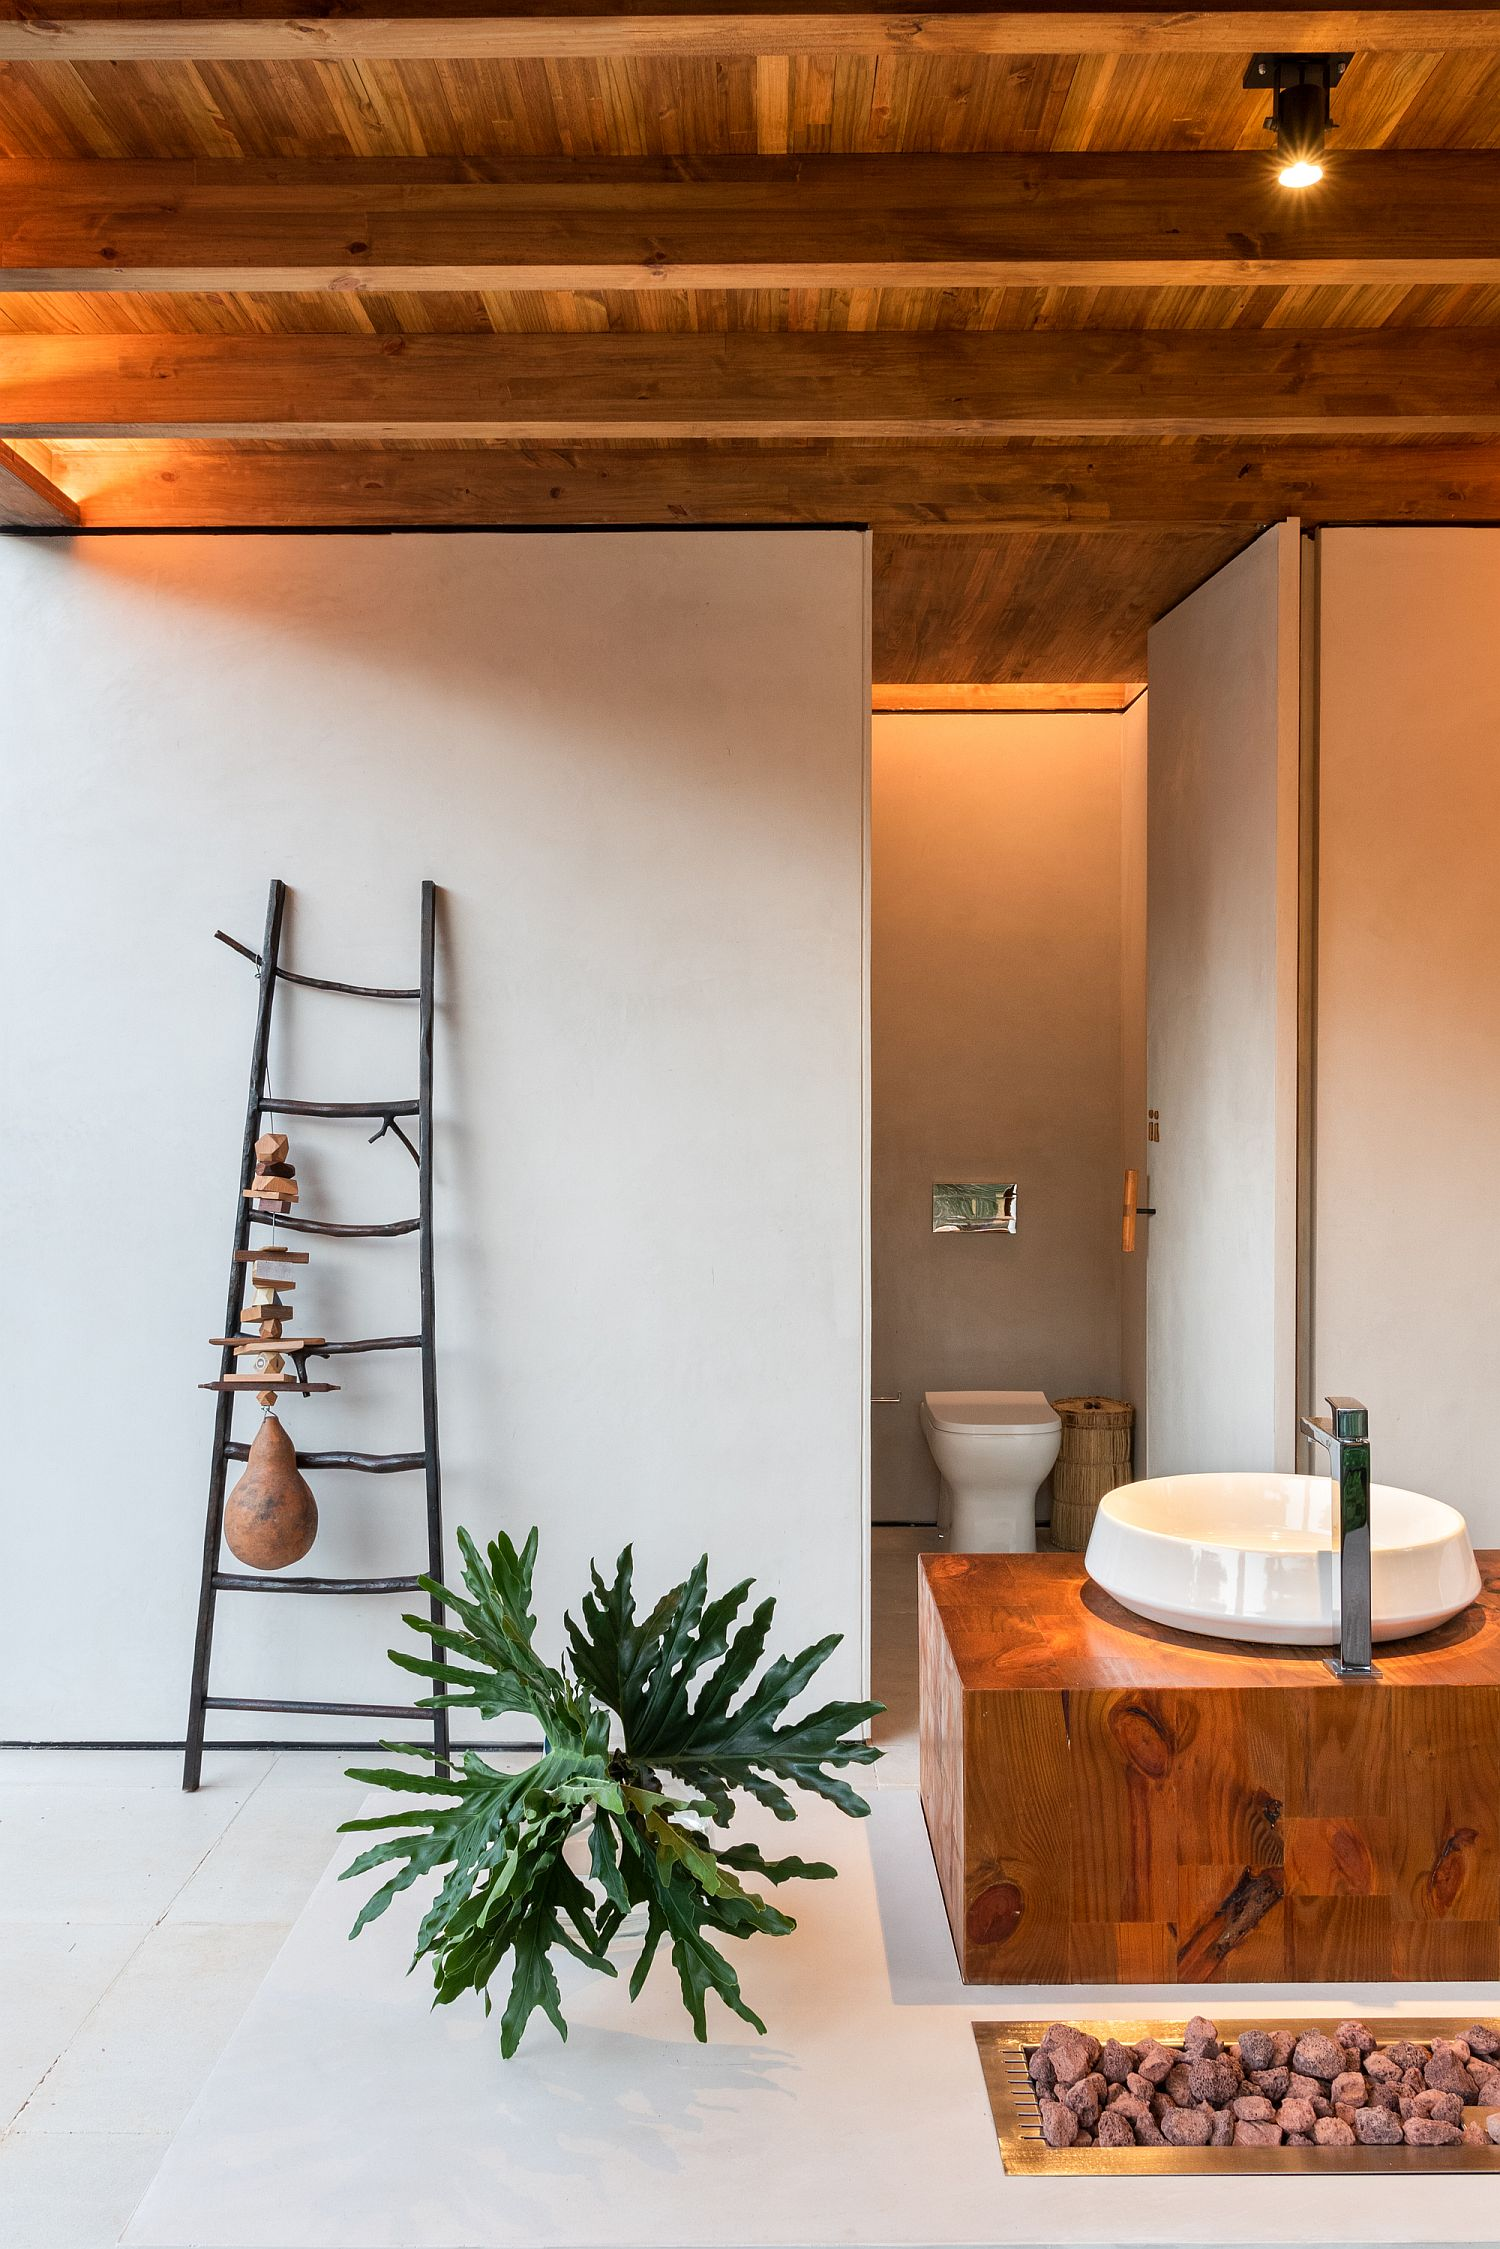 Central washbasin of the terrace with smart design around it